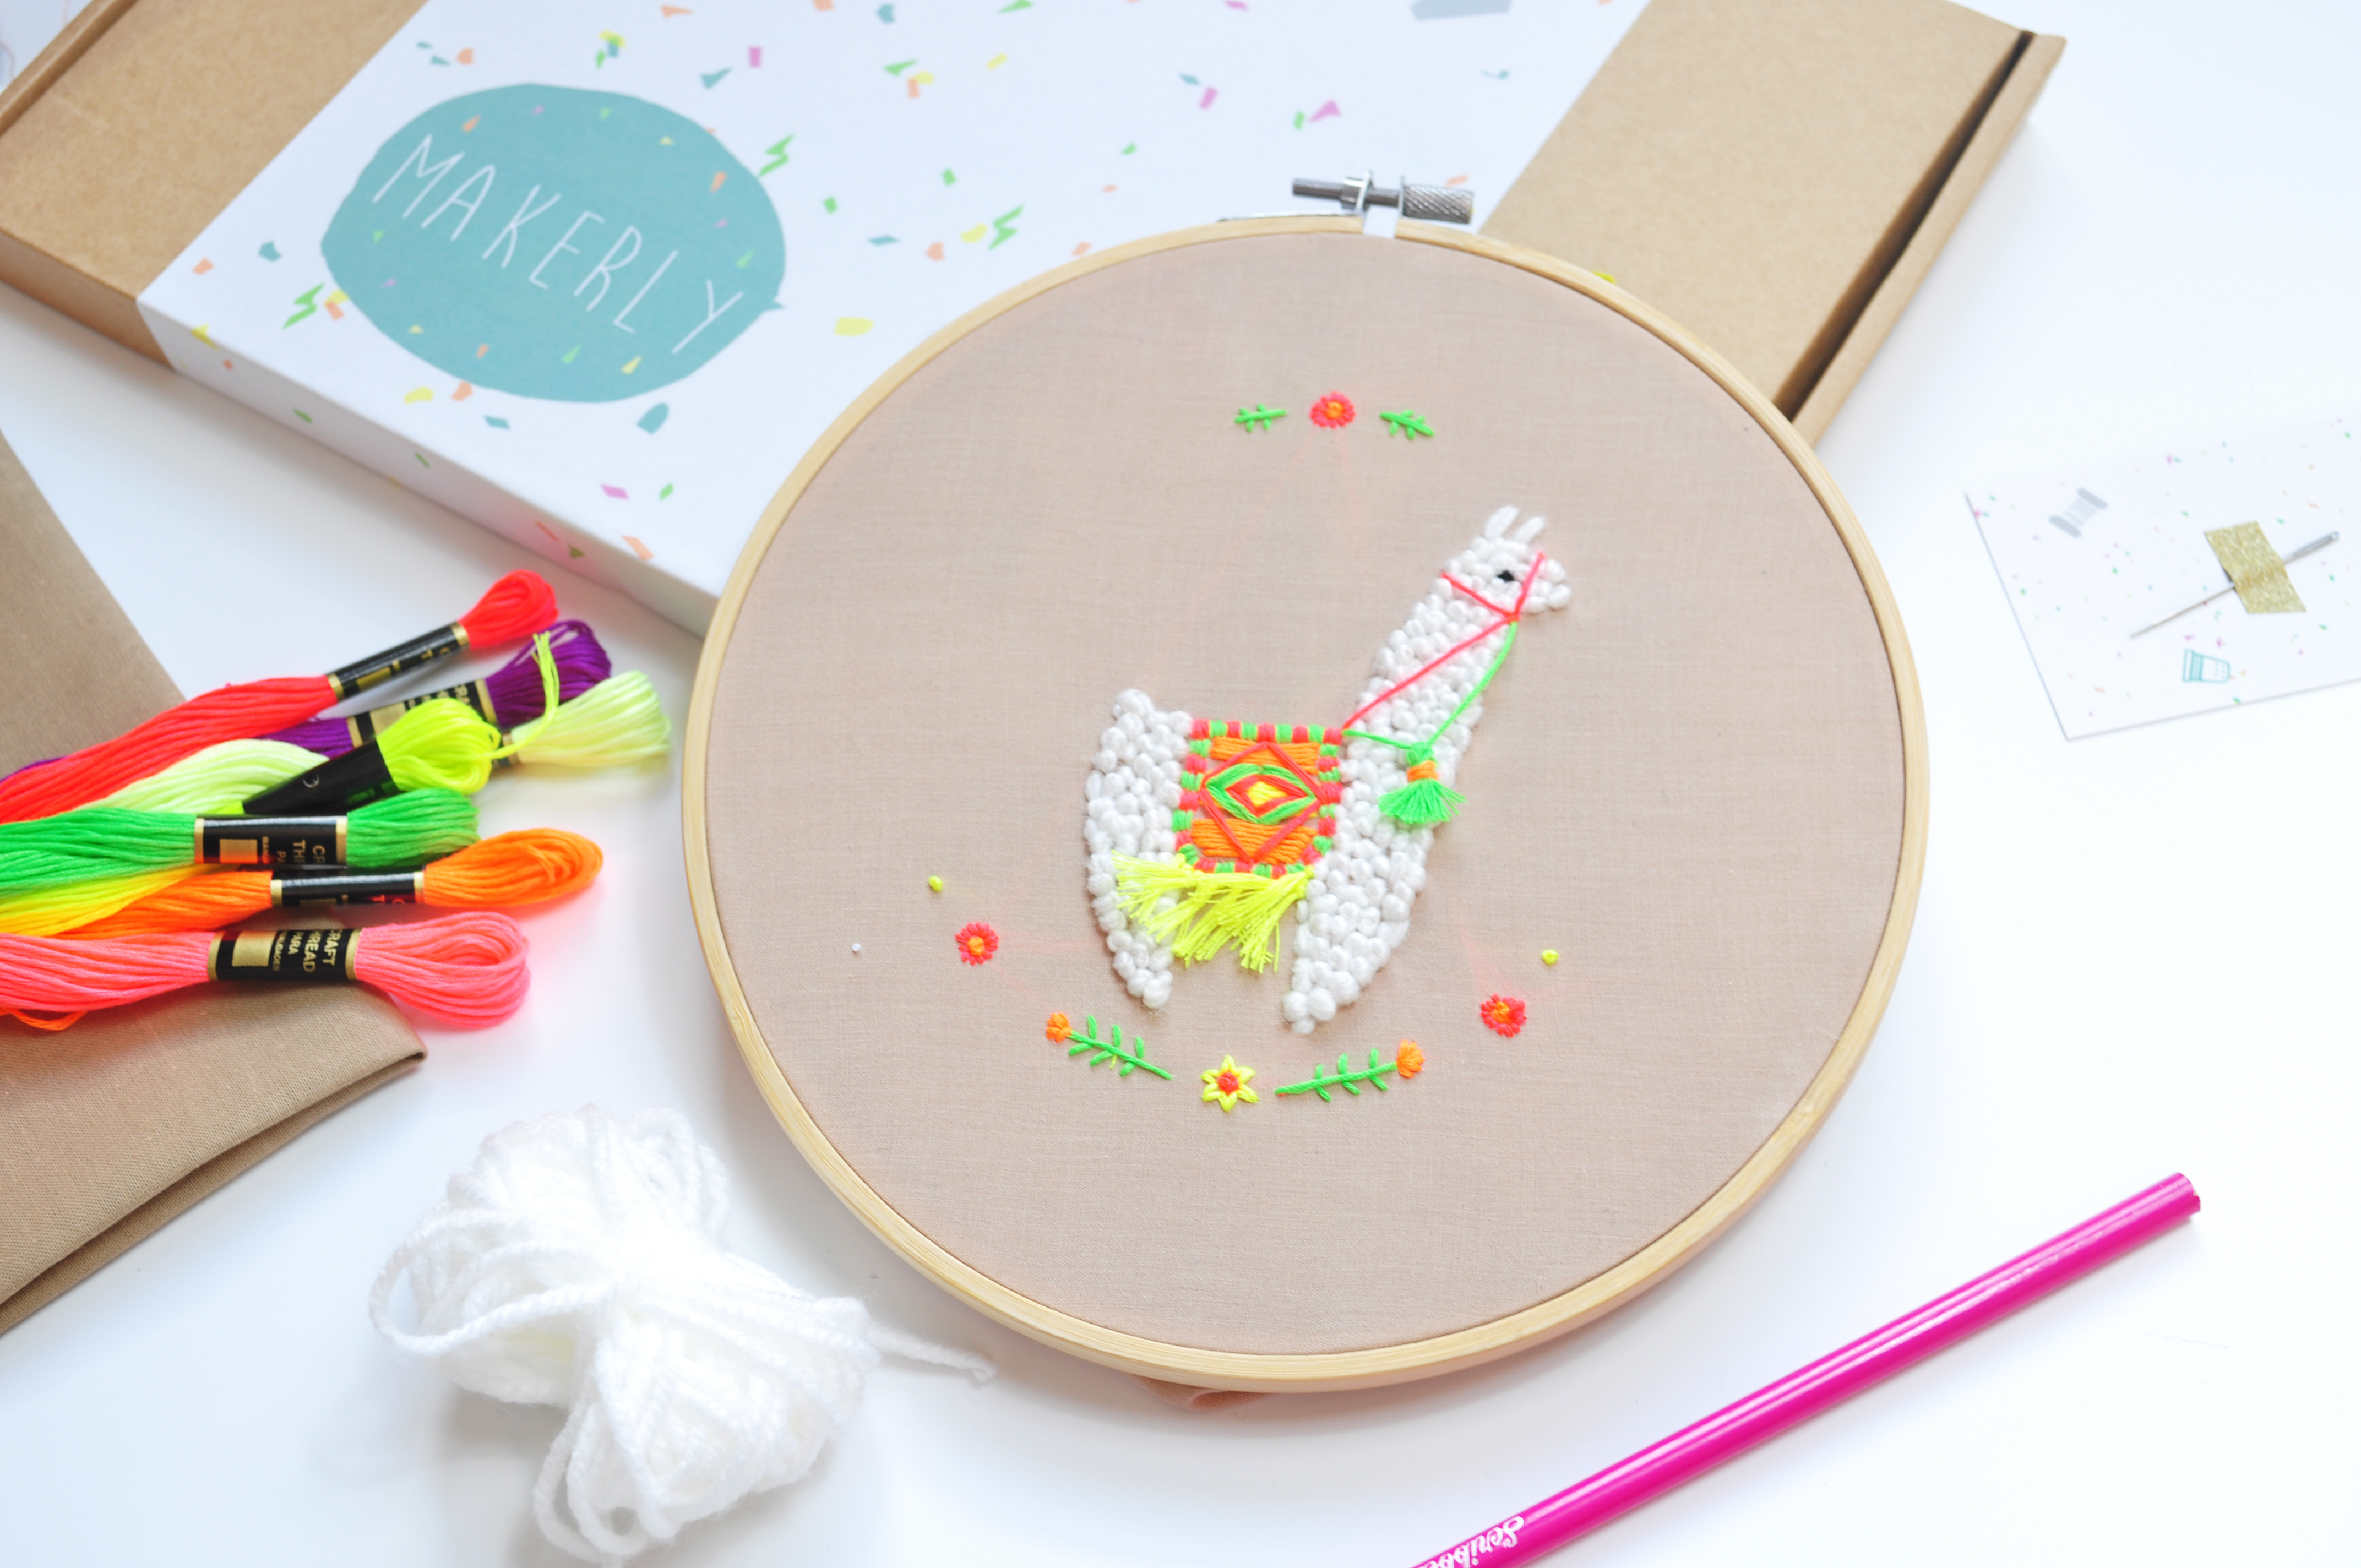 How To Make Your Own Embroidery Pattern Januarys Craft Kit Make Your Own Neon Llama Embroidery